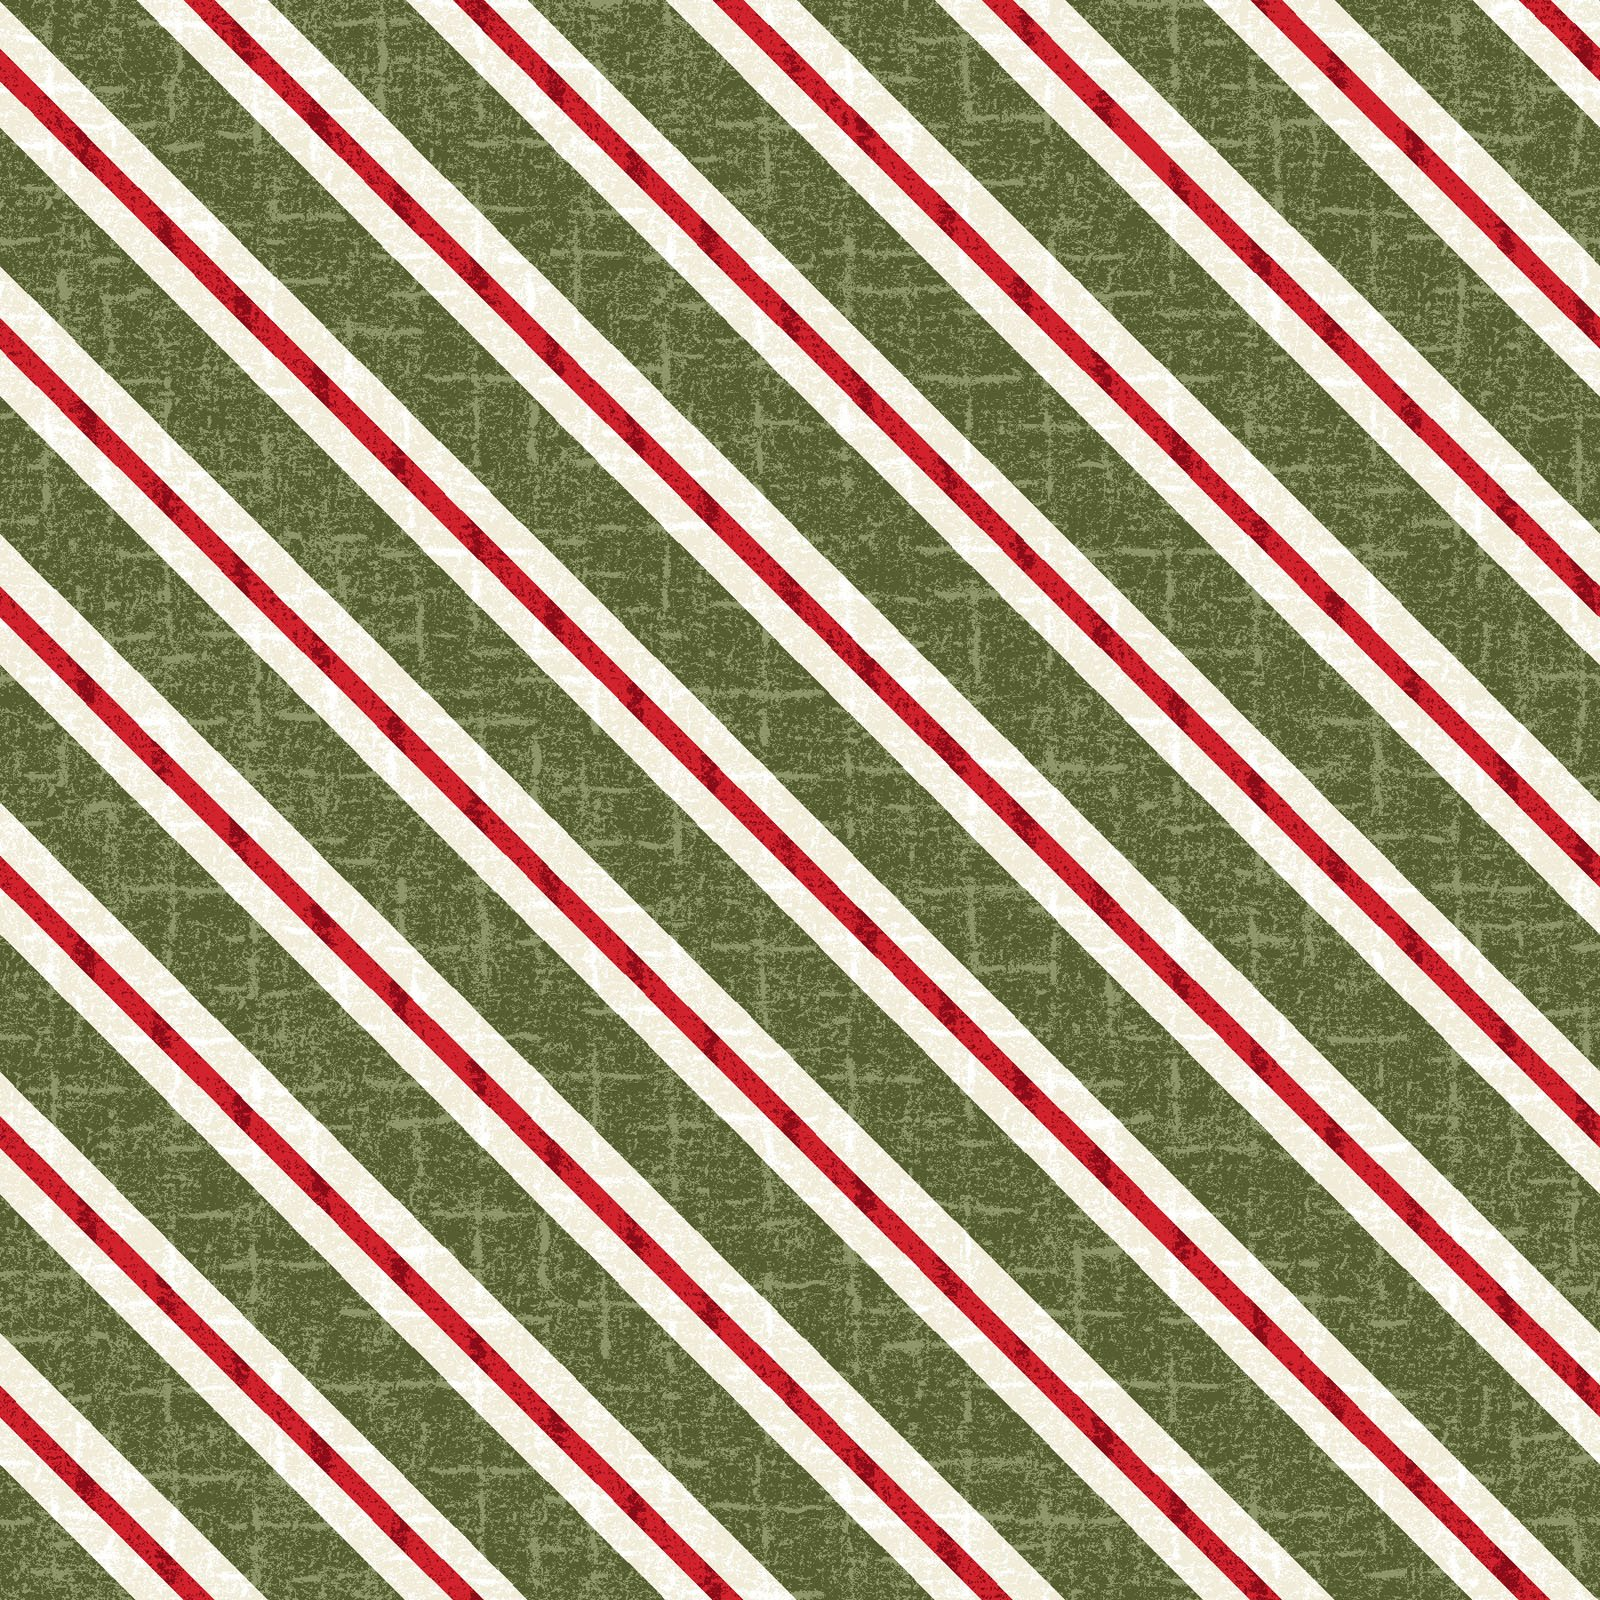 EESC-F9937 G - SNOWDAYS FLANNEL BY BONNIE SULLIVAN CANDY CANE STRIPE GREEN - ARRIVING IN JULY 2021